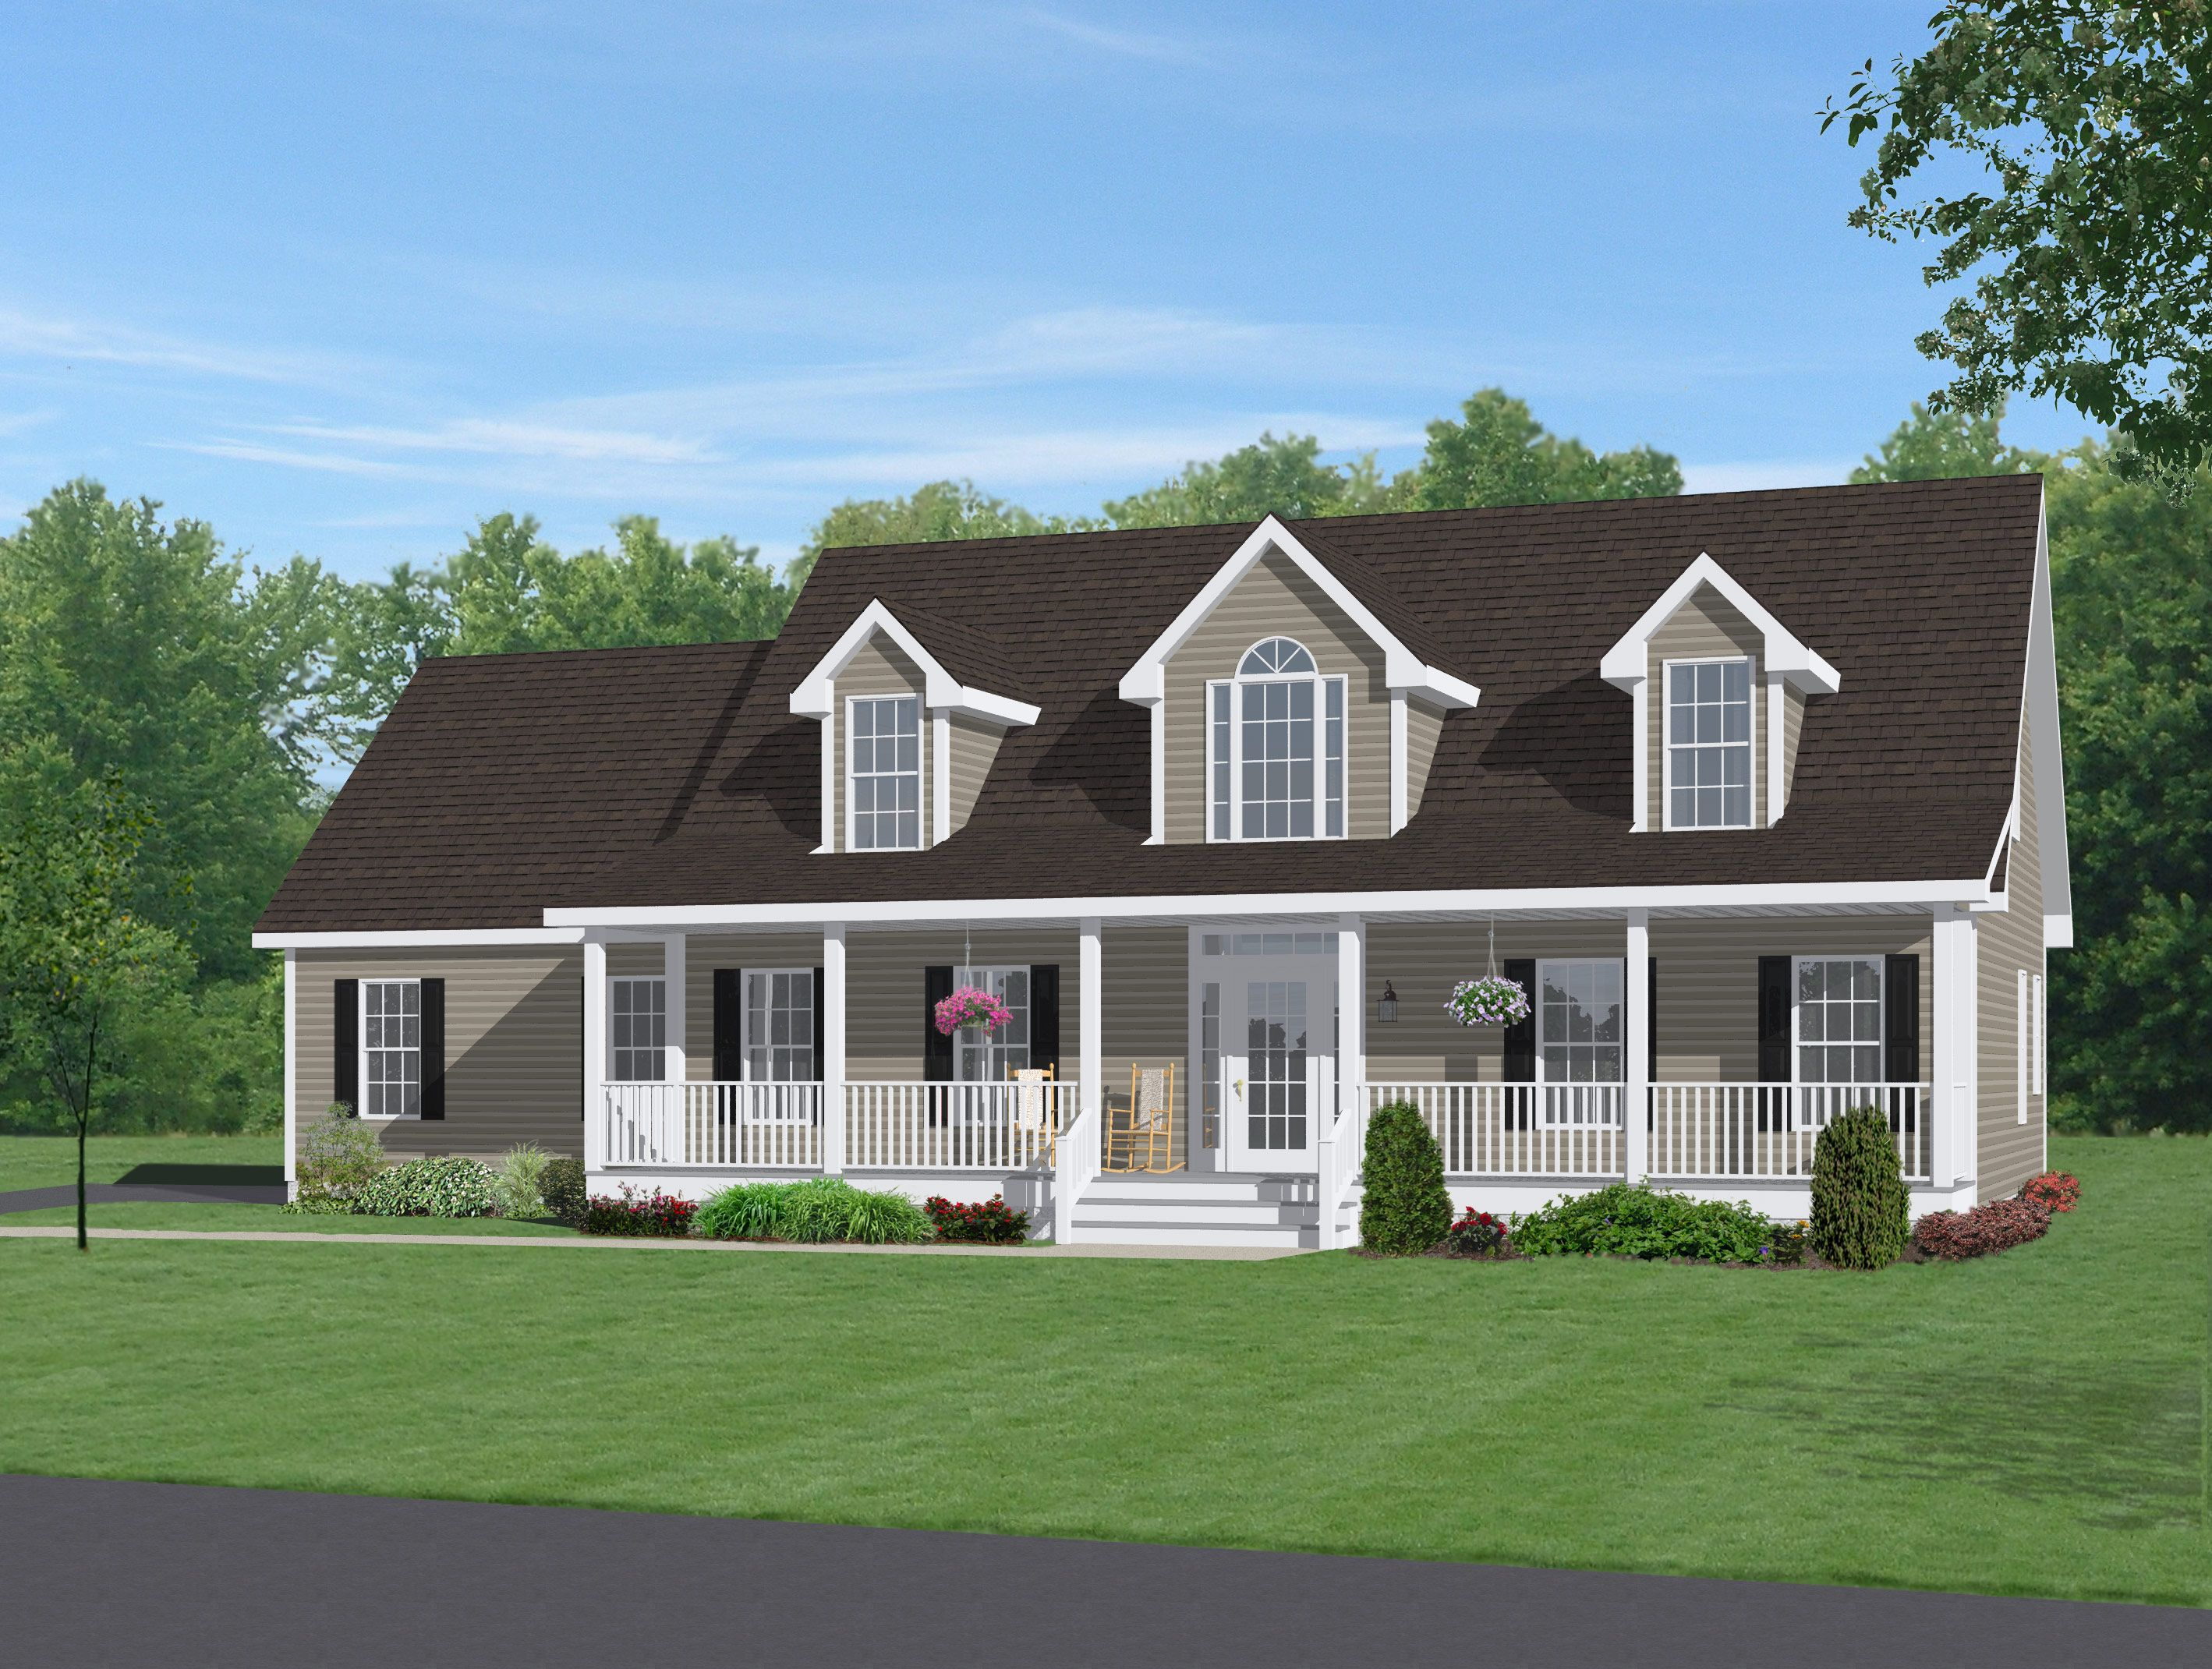 Pin By Alicia On For The Home Porch House Plans Cape Cod House Plans Farmhouse Style House